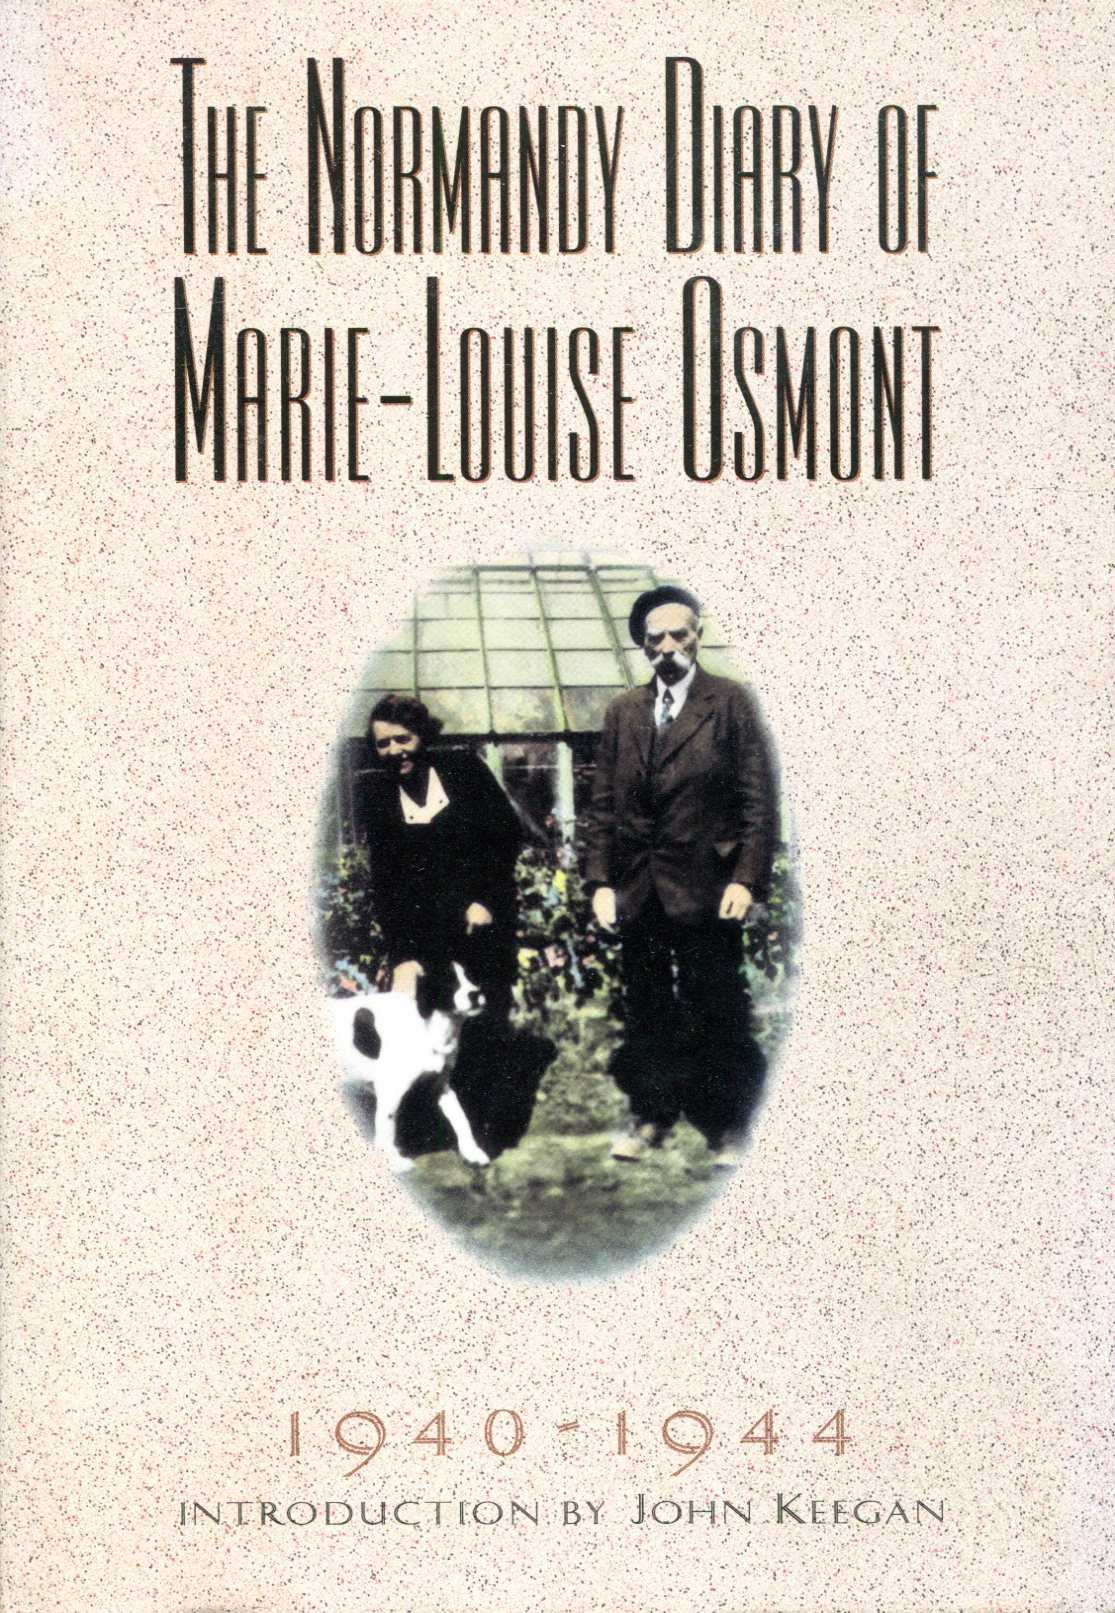 Image for The Normandy Diary of Marie-Louise Osmont: 1940-1944